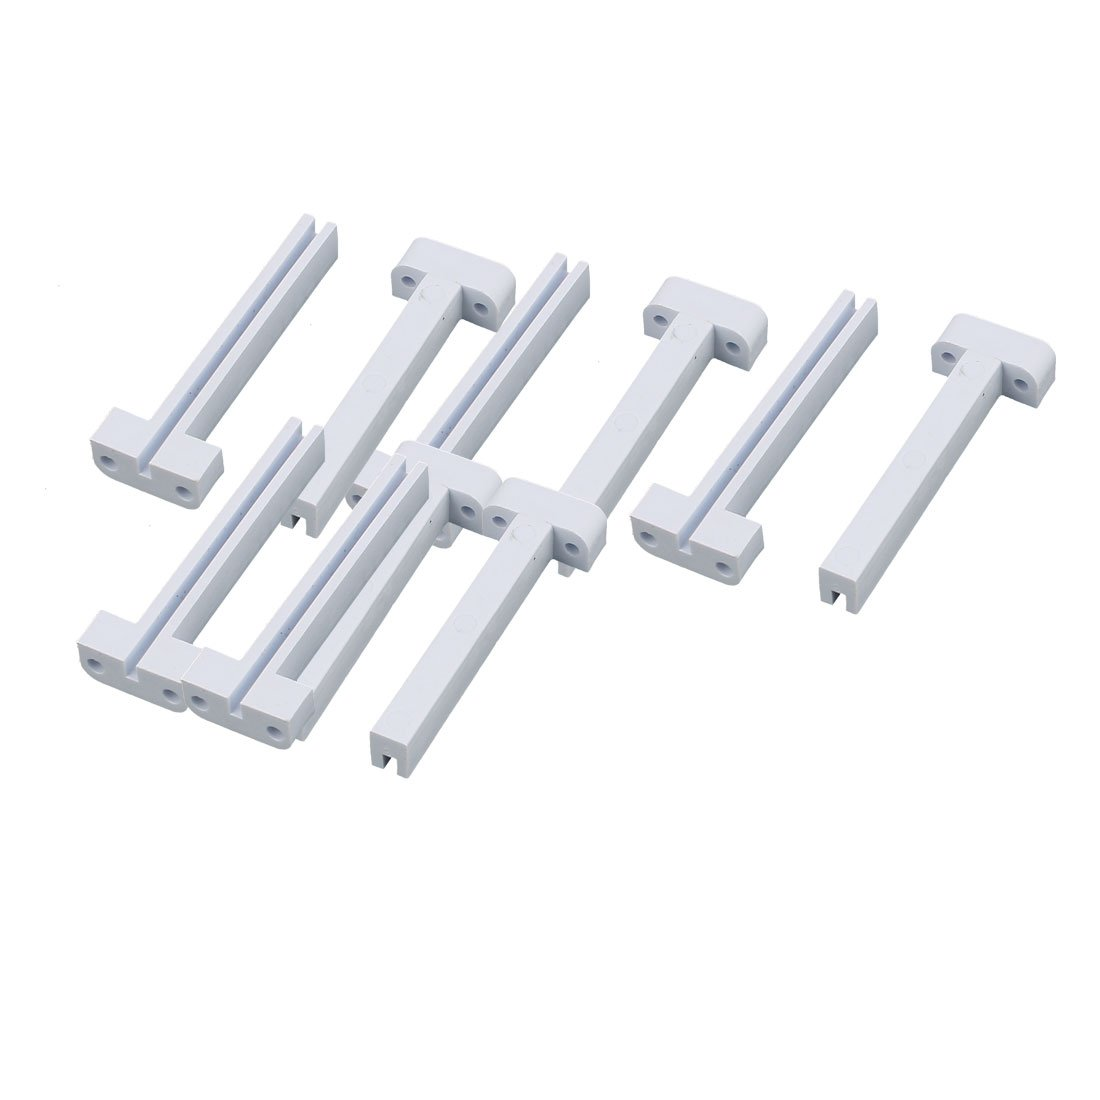 "Uxcell a16031500ux2062 10 Piece Plastic Vertical Mount PCB Circuit Board Slot 50 mm Guide Rail Holder Bar White, 0.79"" Width, 2.36"" Length"